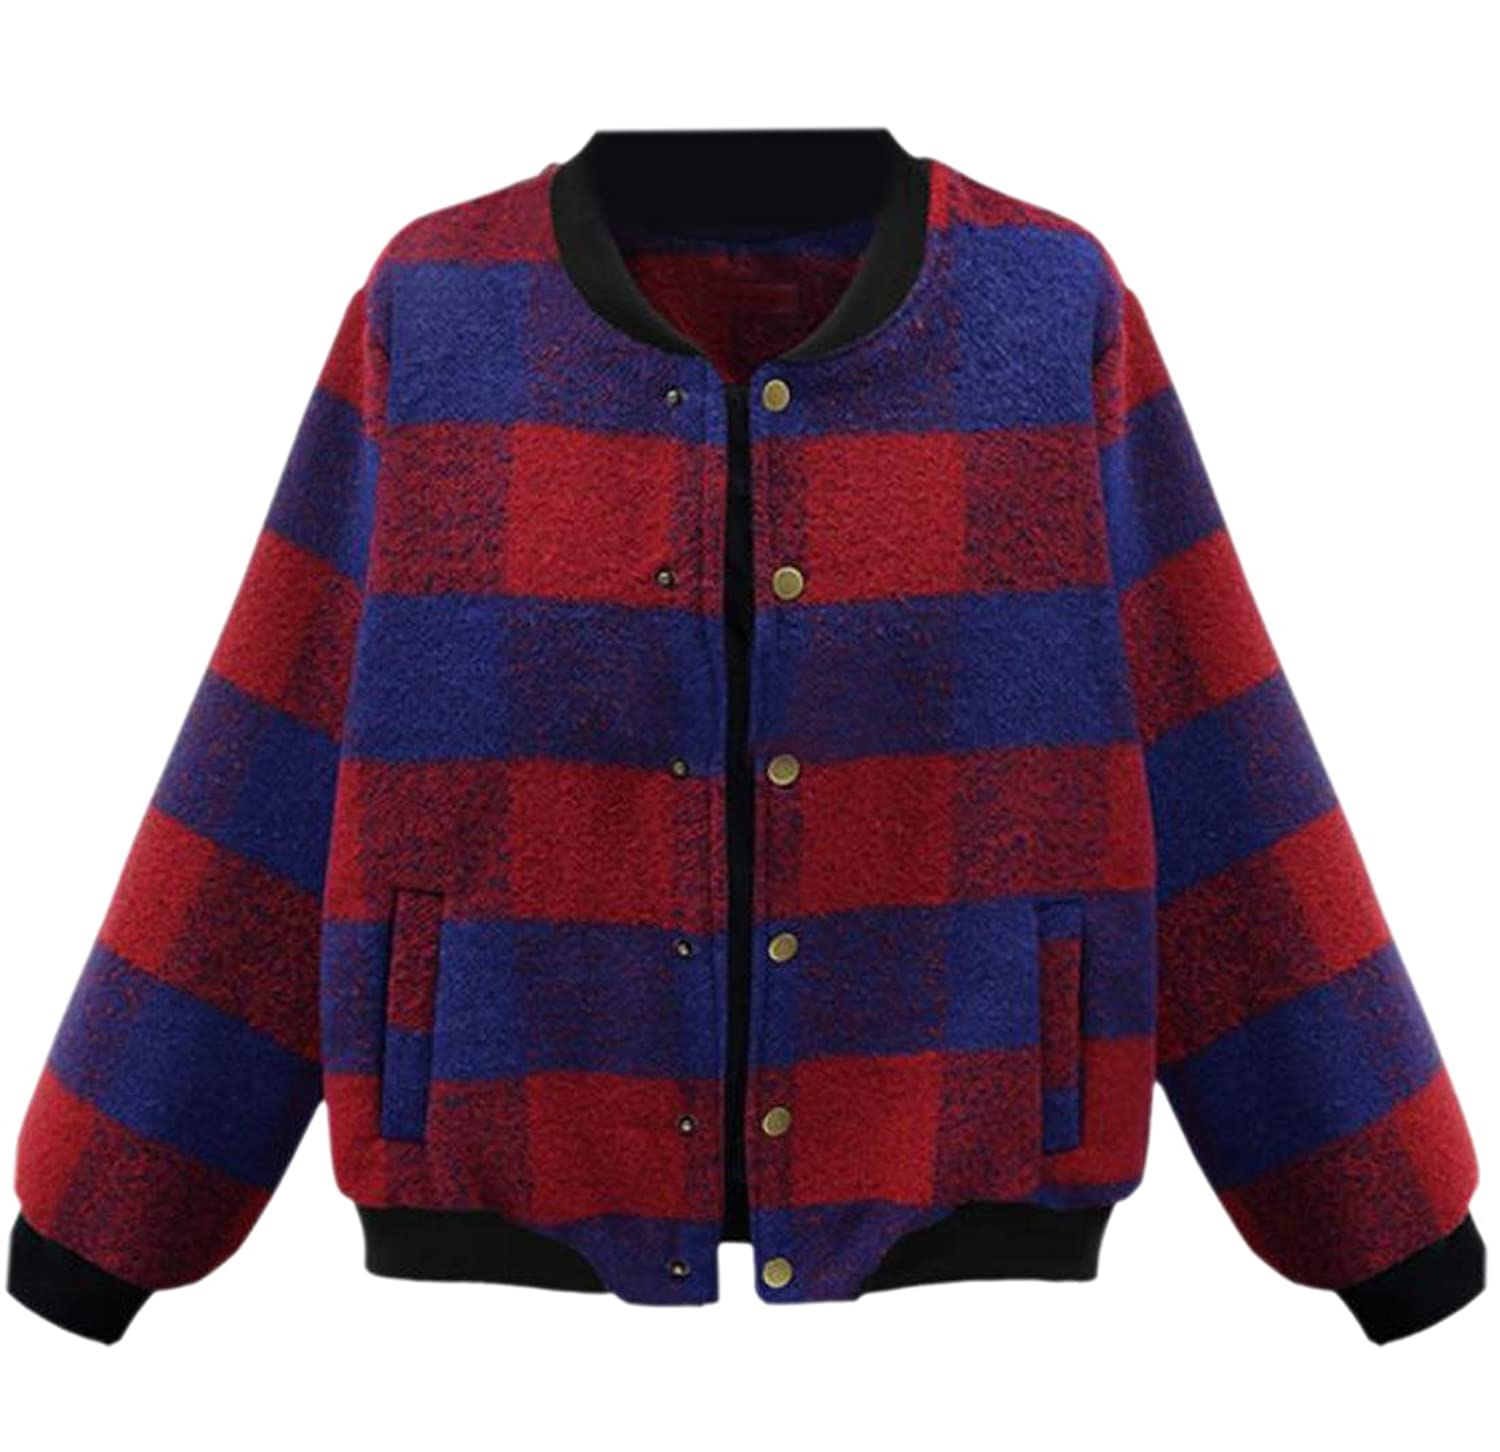 Comfy Women's Casual Stand-up Collar Plaid Long Sleeve Top Coat